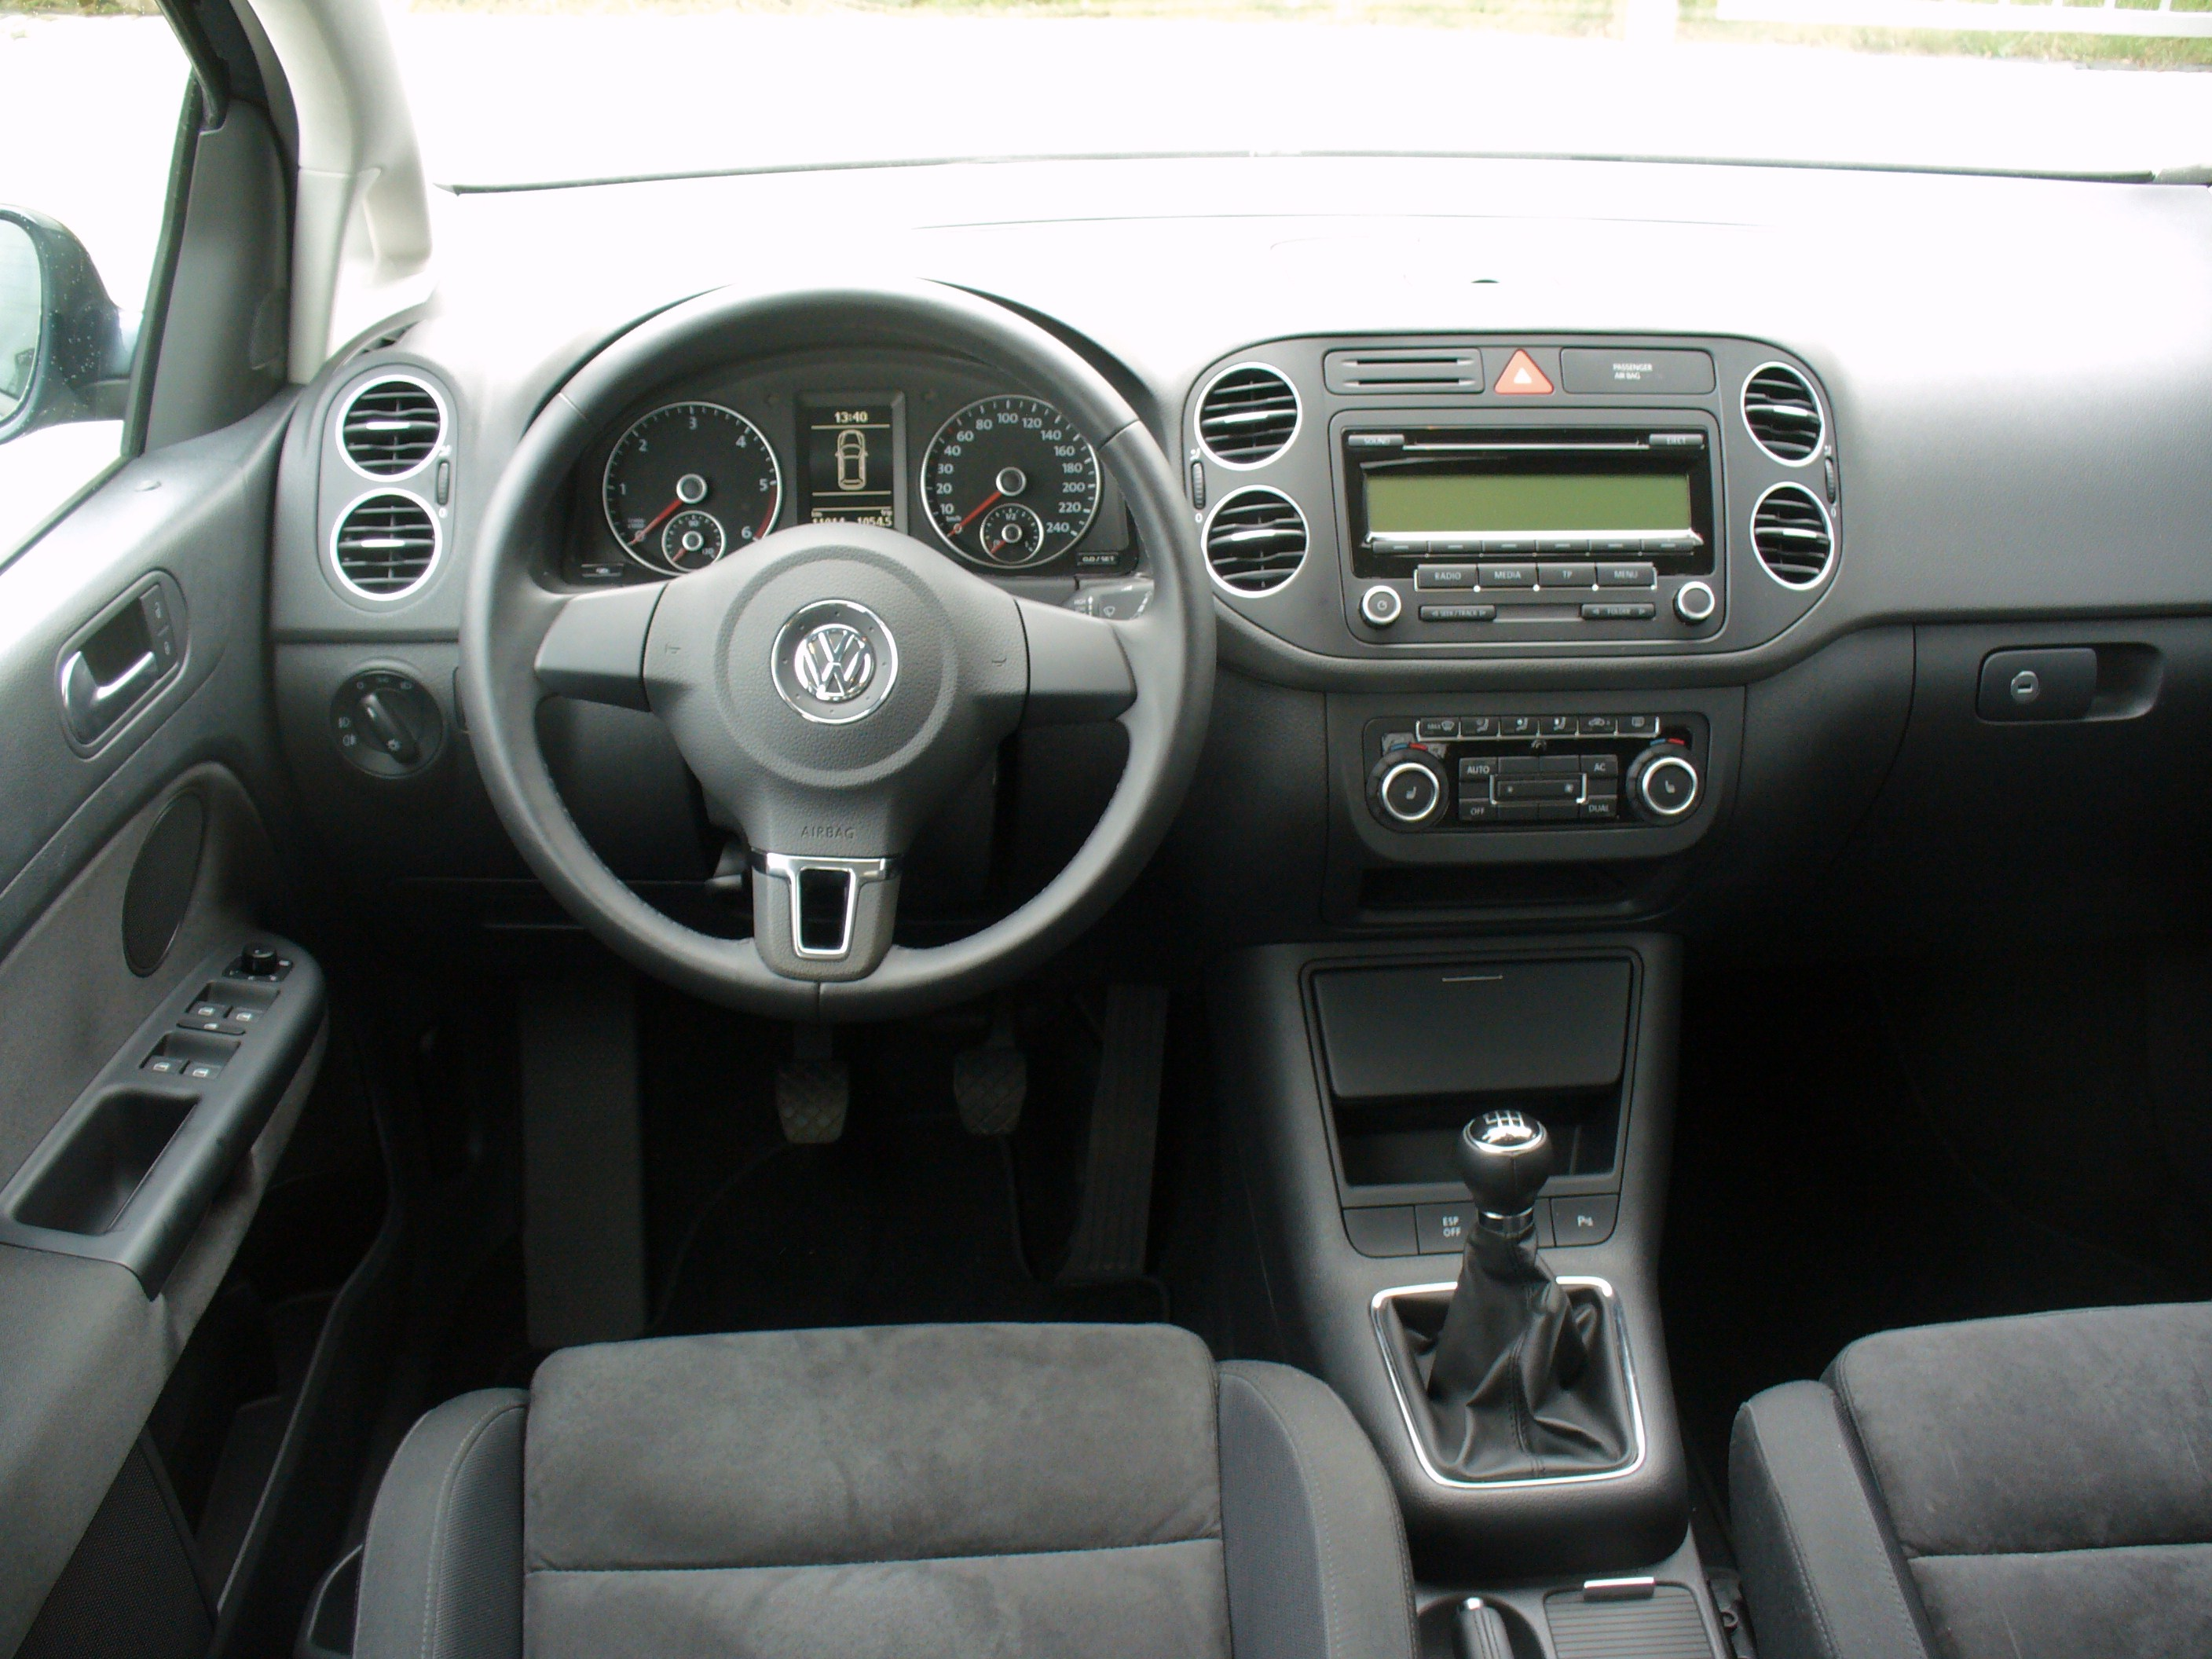 https://upload.wikimedia.org/wikipedia/commons/7/77/VW_Golf_Plus_2.0_TDI_Highline_Interieur.JPG